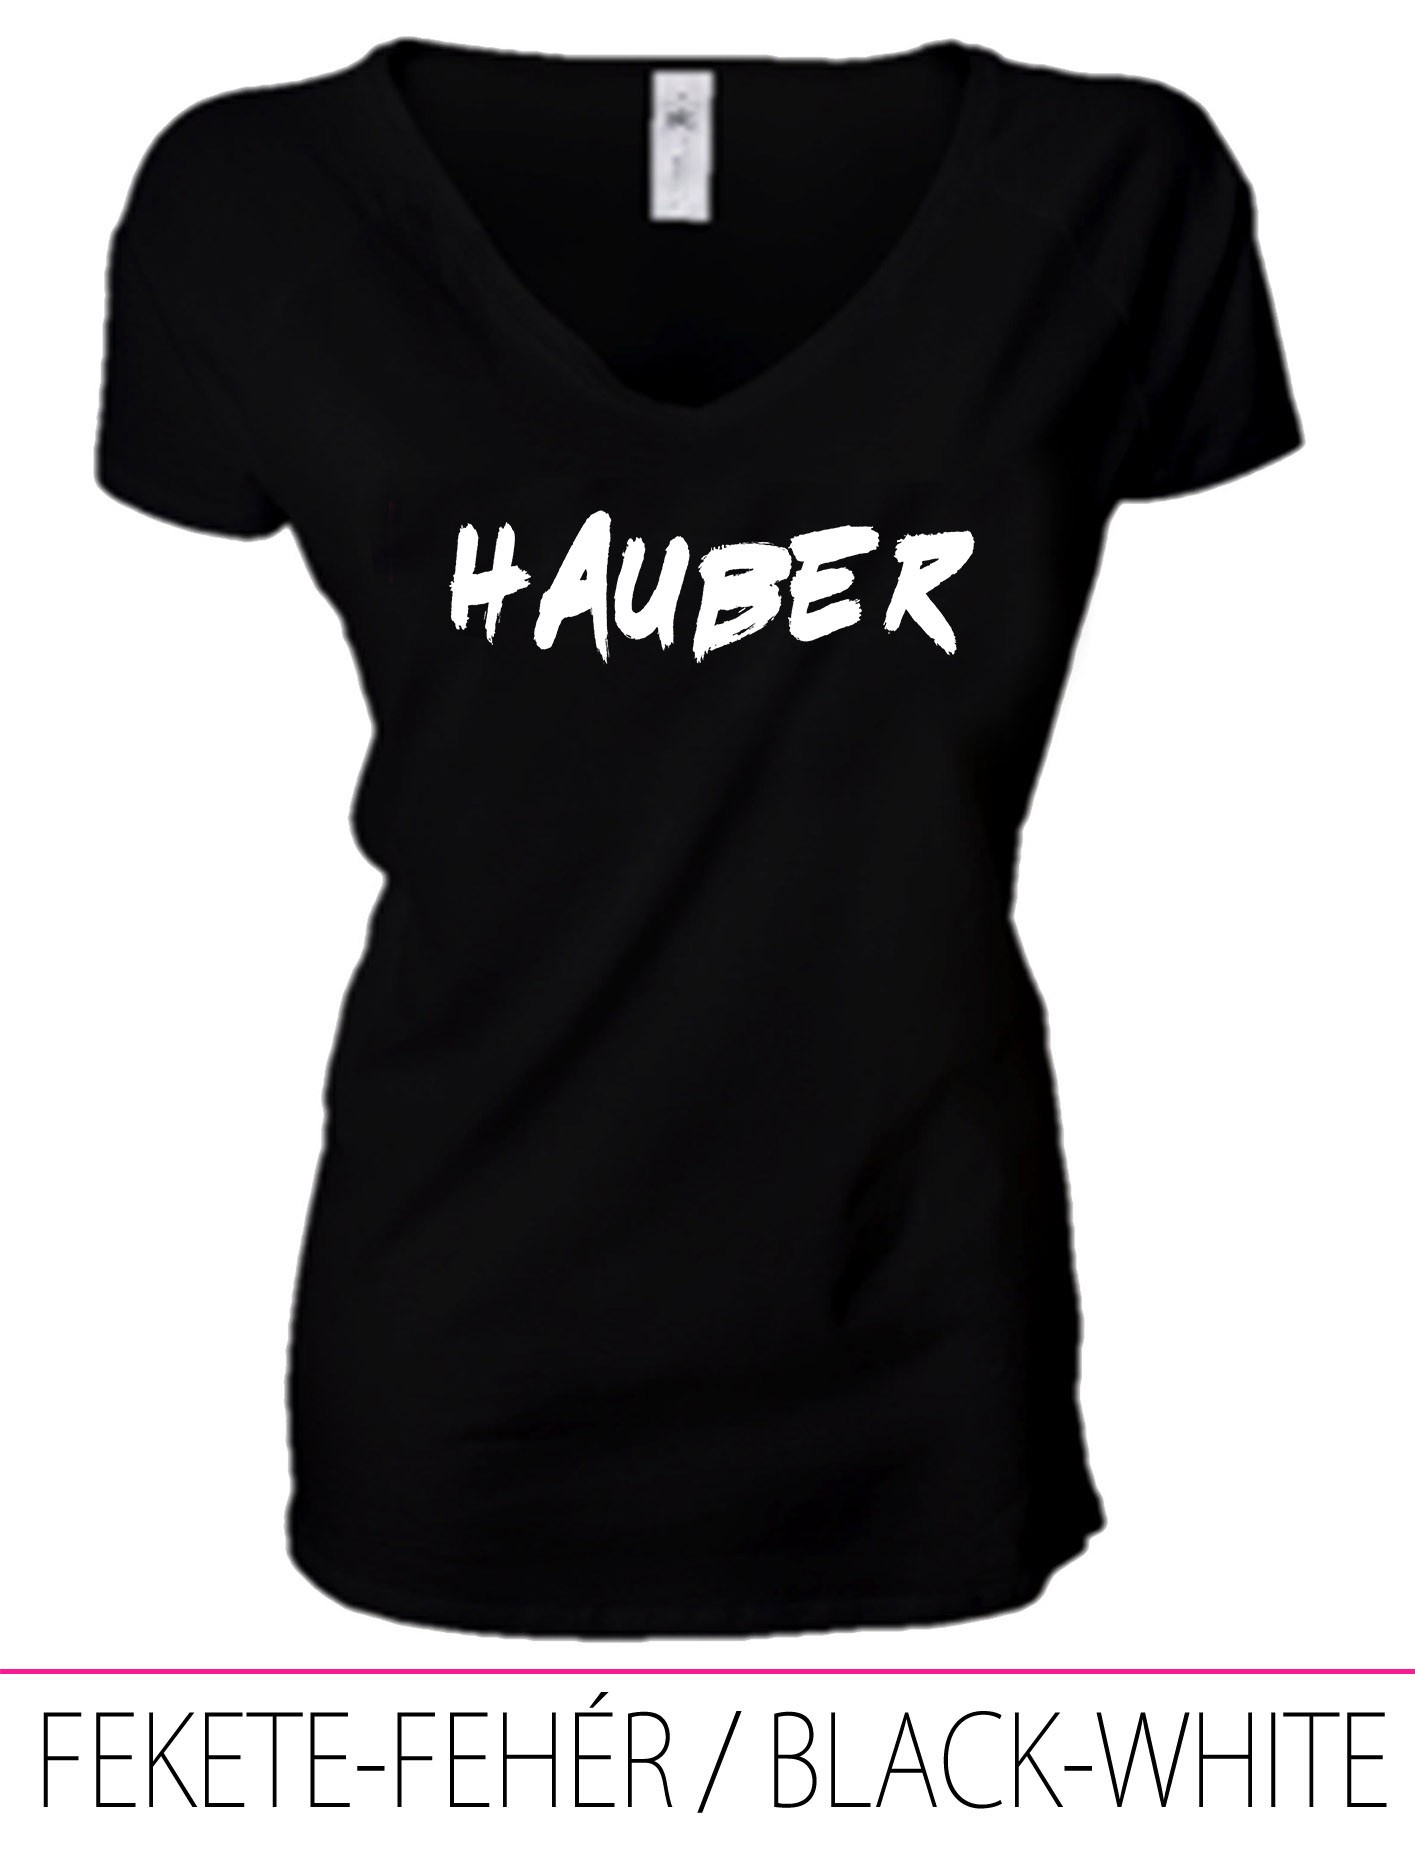 LADIES PREMIUM V NECK T-SHIRT HAUBER BLACK-WHITE